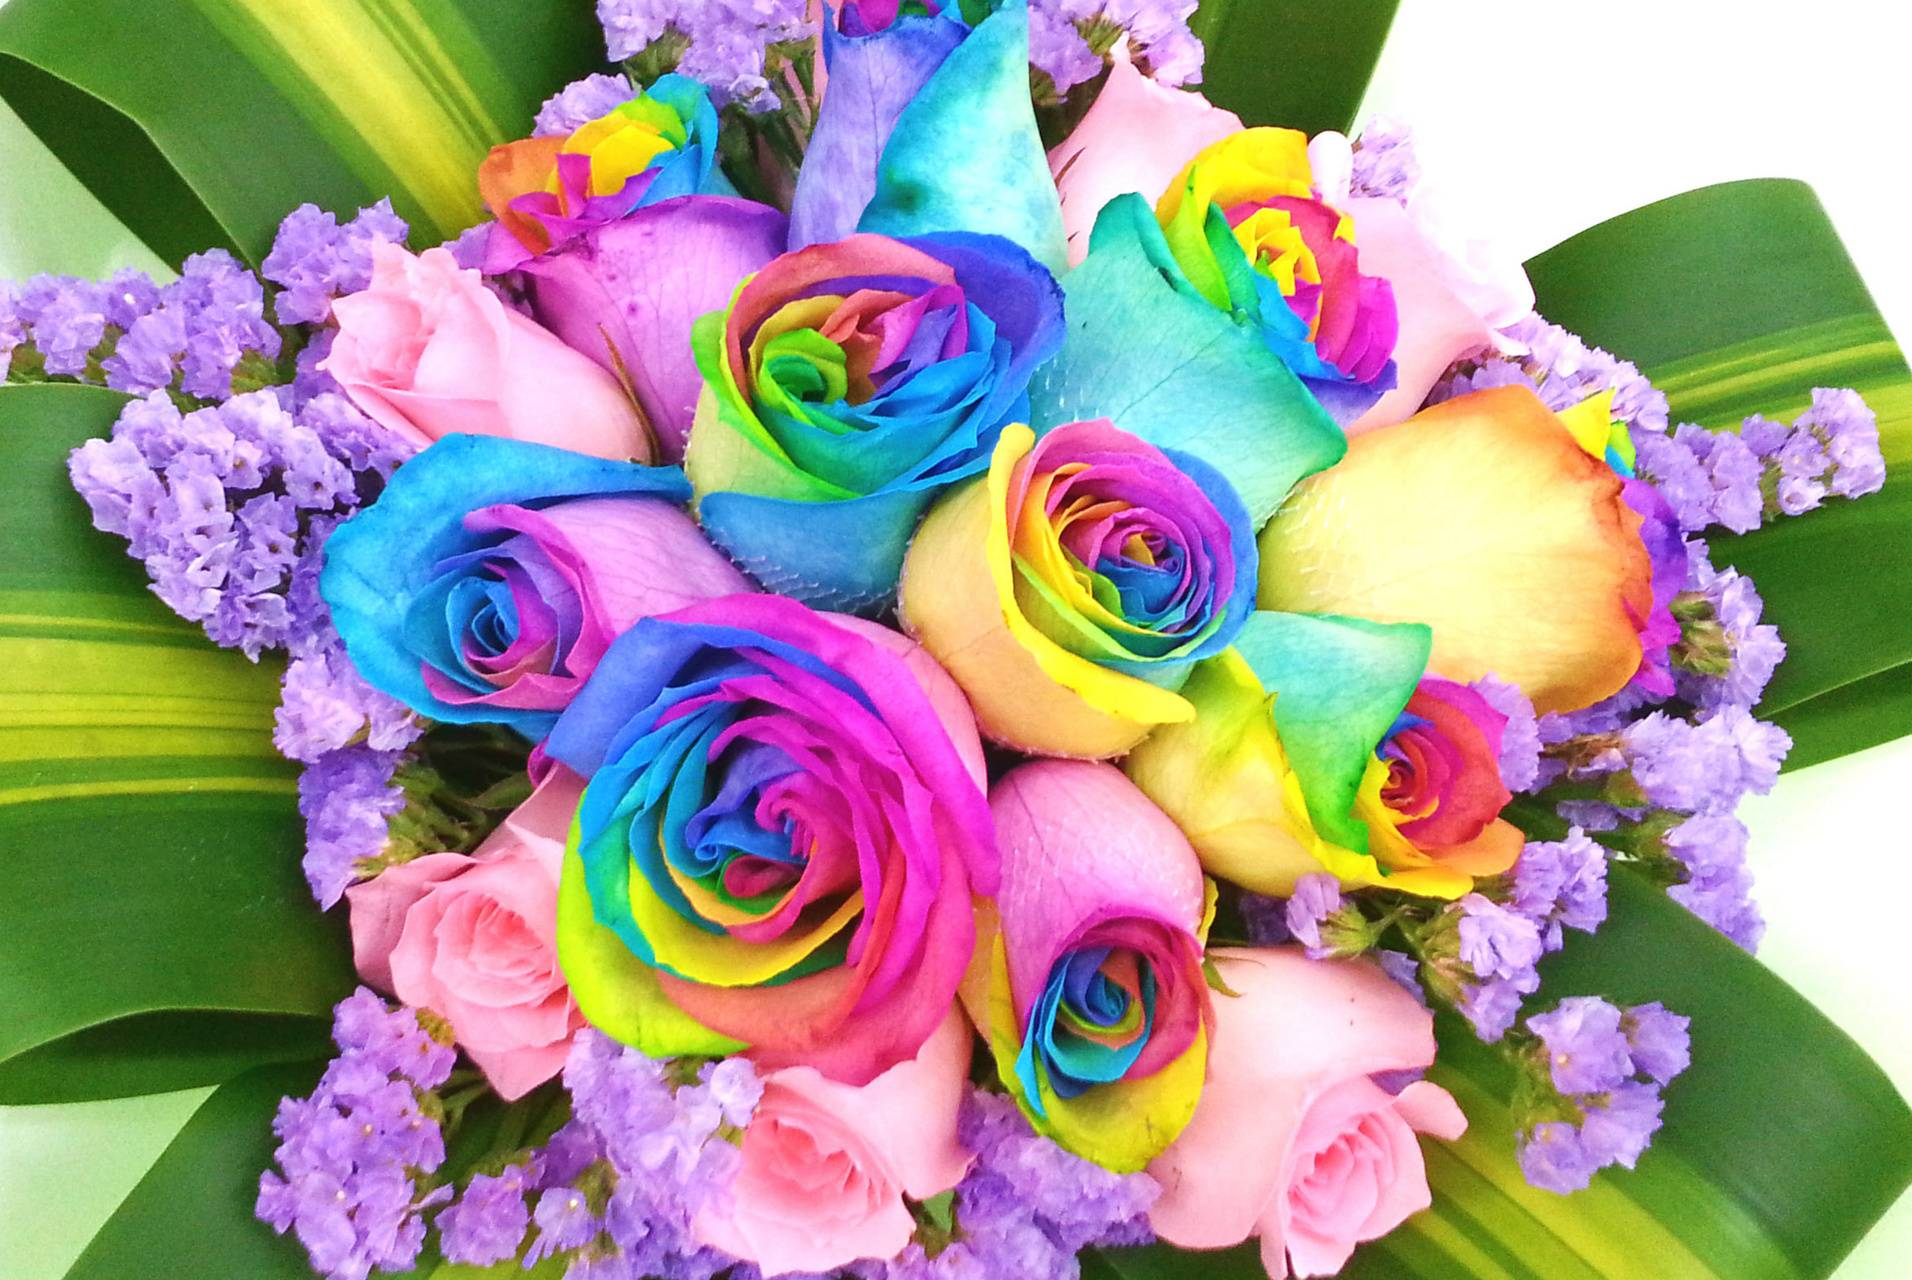 Coulorful roses